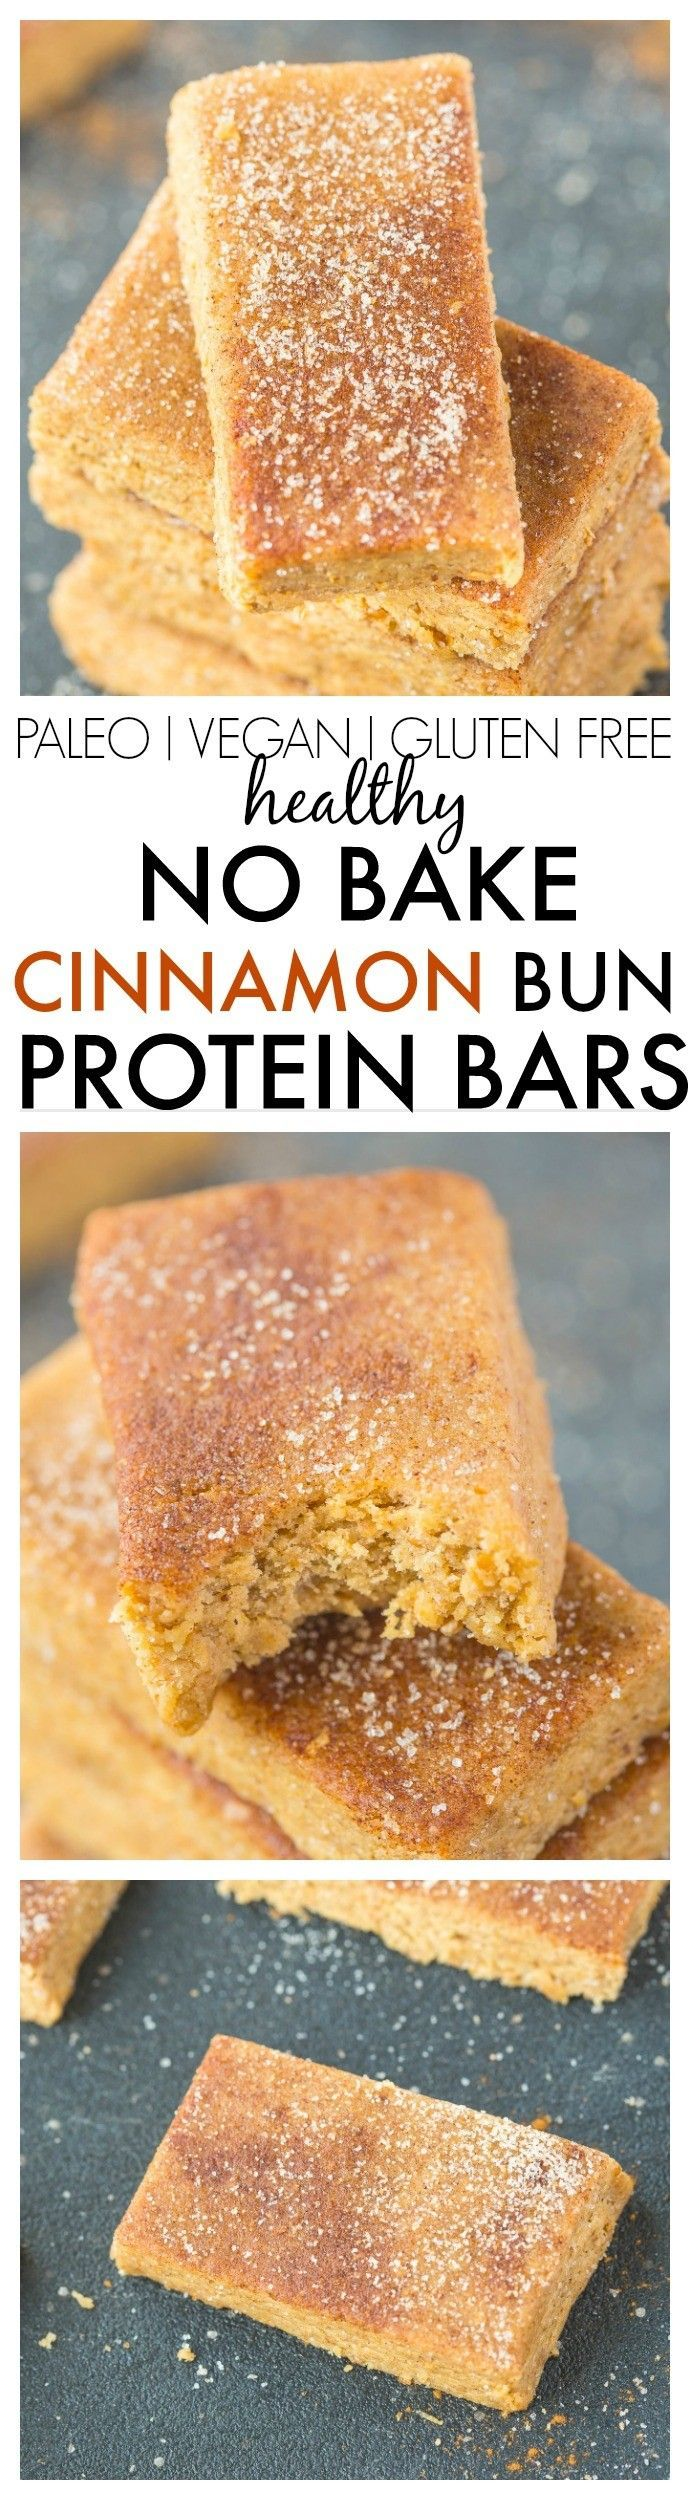 Healthy No Bake Cinnamon Bun Protein Bars-Just 10 minutes and 1 bowl to whip these up- Soft, chewy and no refrigeration needed- They taste like dessert! {vegan, gluten free, sugar free + paleo option!}- http://thebigmansworld.com